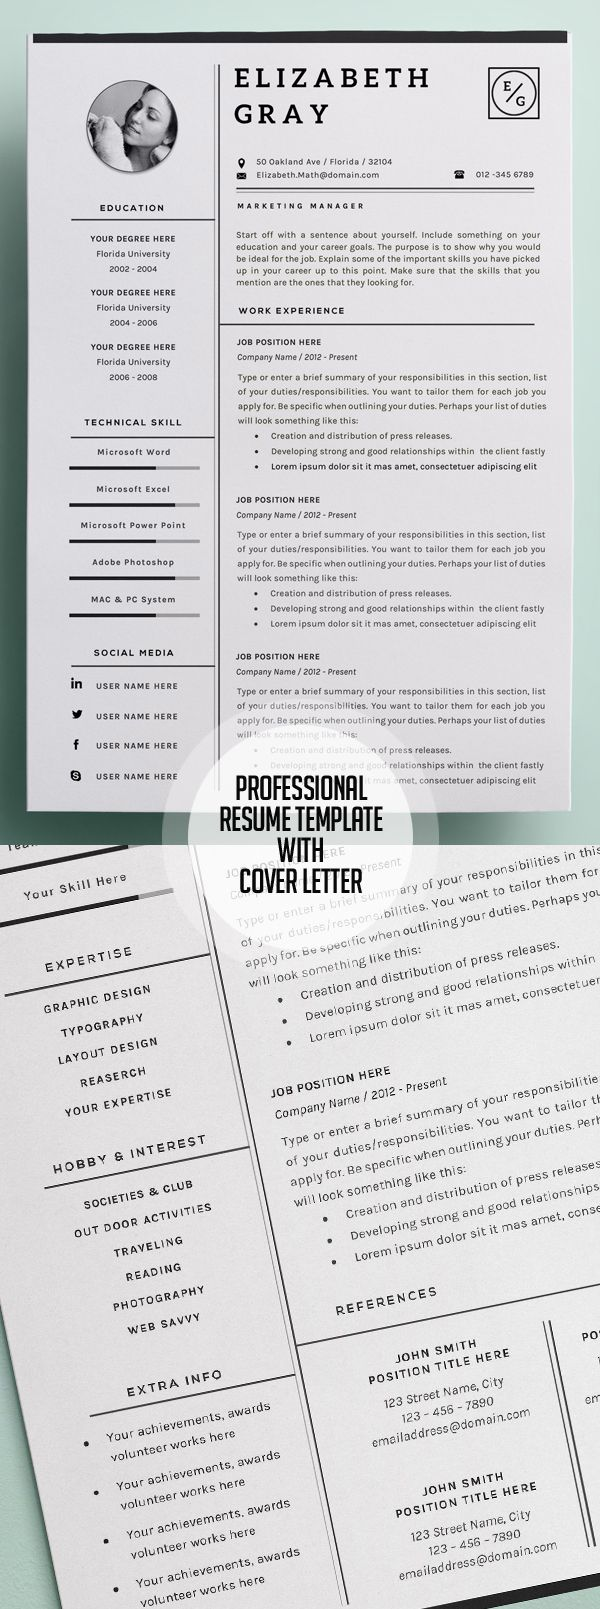 Picnictoimpeachus  Picturesque  Resume Ideas On Pinterest  Resume Resume Templates And  With Interesting Professional And Modern Resume Template With Page Cover Cvtemplate With Endearing Active Verbs For Resume Also Resume Help Online In Addition What Does Parse Resume Mean And Music Teacher Resume As Well As Quick Resume Maker Additionally Cna Duties For Resume From Pinterestcom With Picnictoimpeachus  Interesting  Resume Ideas On Pinterest  Resume Resume Templates And  With Endearing Professional And Modern Resume Template With Page Cover Cvtemplate And Picturesque Active Verbs For Resume Also Resume Help Online In Addition What Does Parse Resume Mean From Pinterestcom